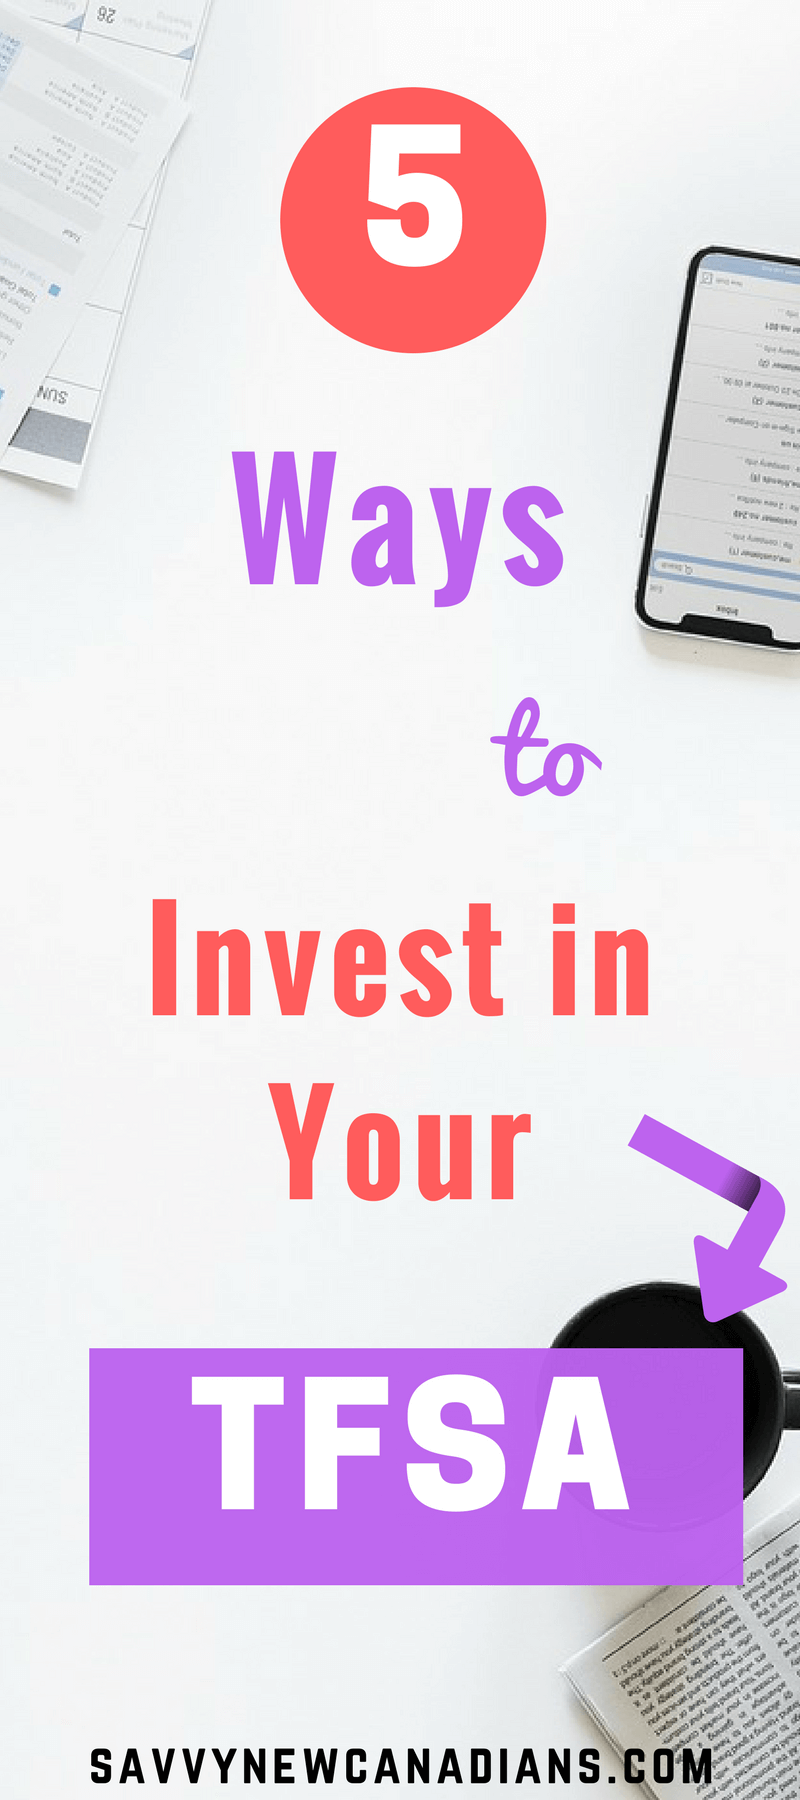 5 Ways To Invest in Your TFSA. Check out these 5 great options for investing your TFSA and start making money. #TFSA #makemoney #financialplanning #retirementplanning #saving #personalfinance